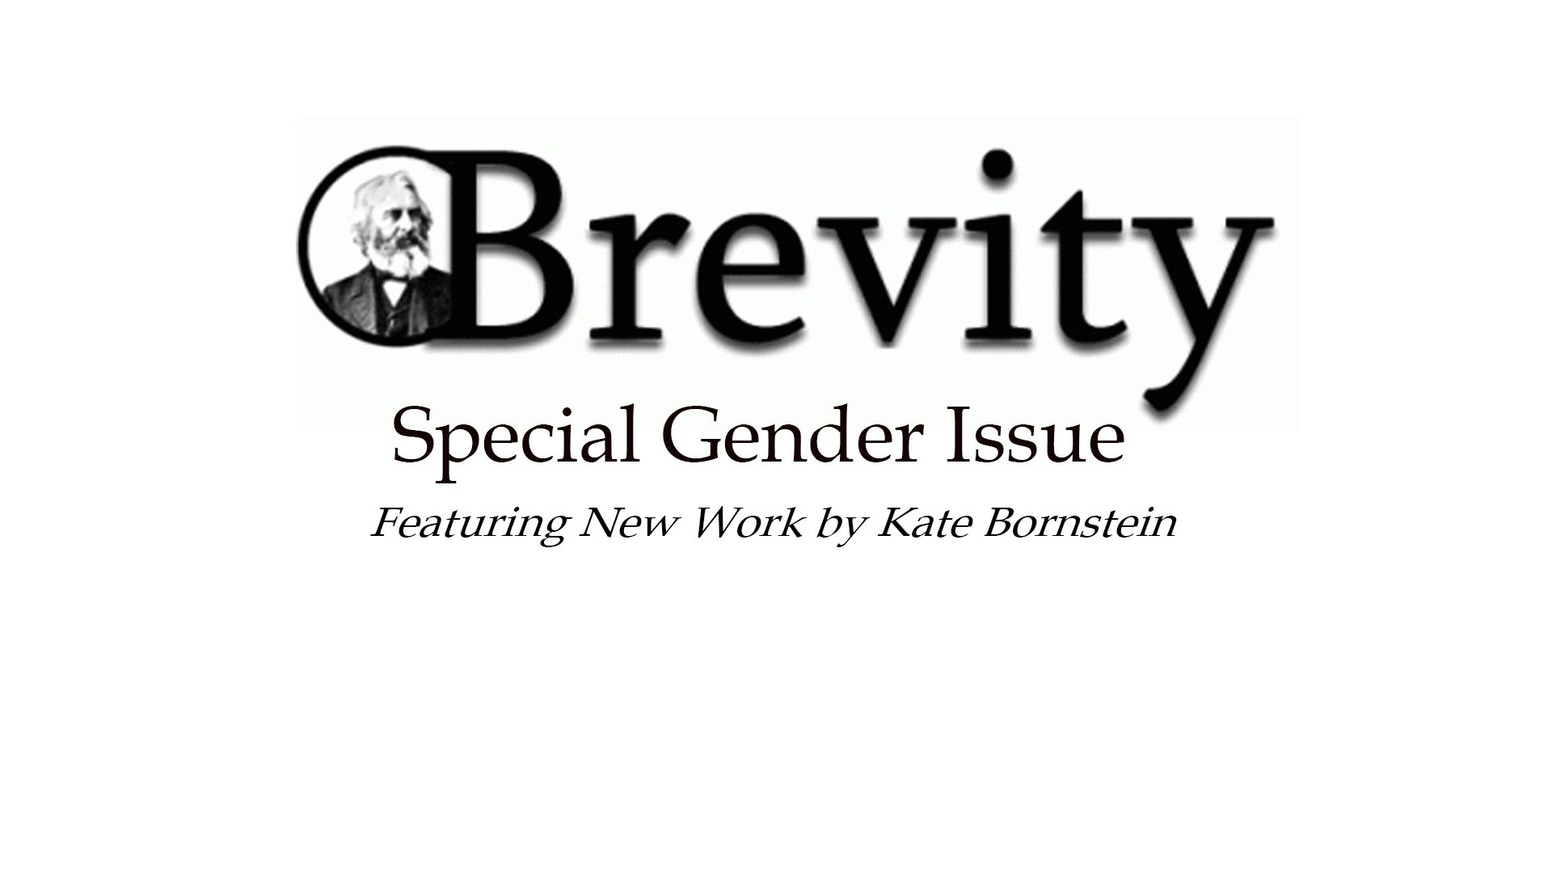 brevity magazine s special gender issue by brevity magazine help support brevity magazine s two upcoming special issues on gender and race get great books and essay critiques in return